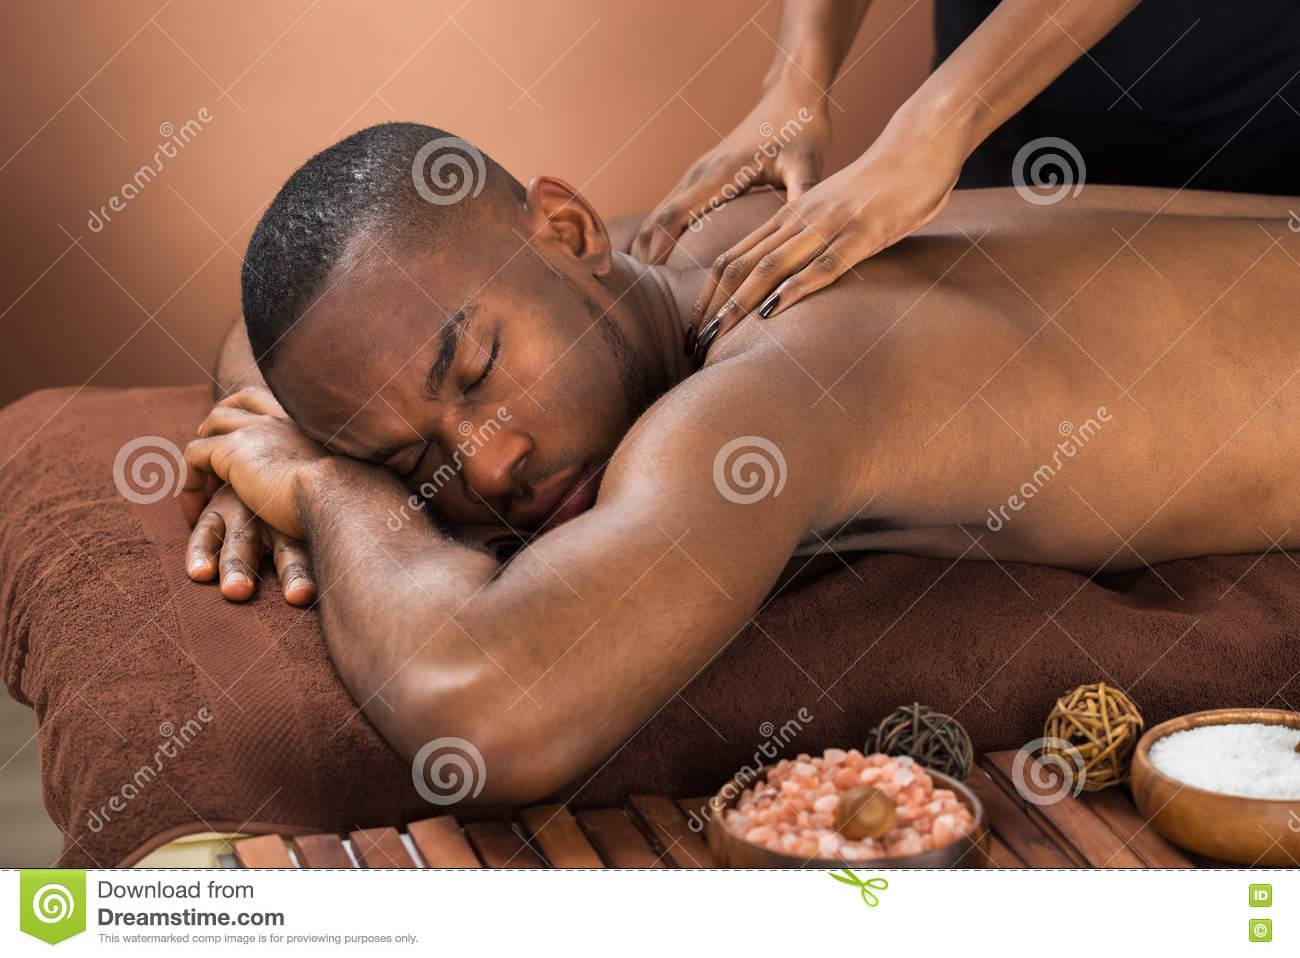 2 099 African Massage Photos Free Royalty Free Stock Photos From Dreamstime